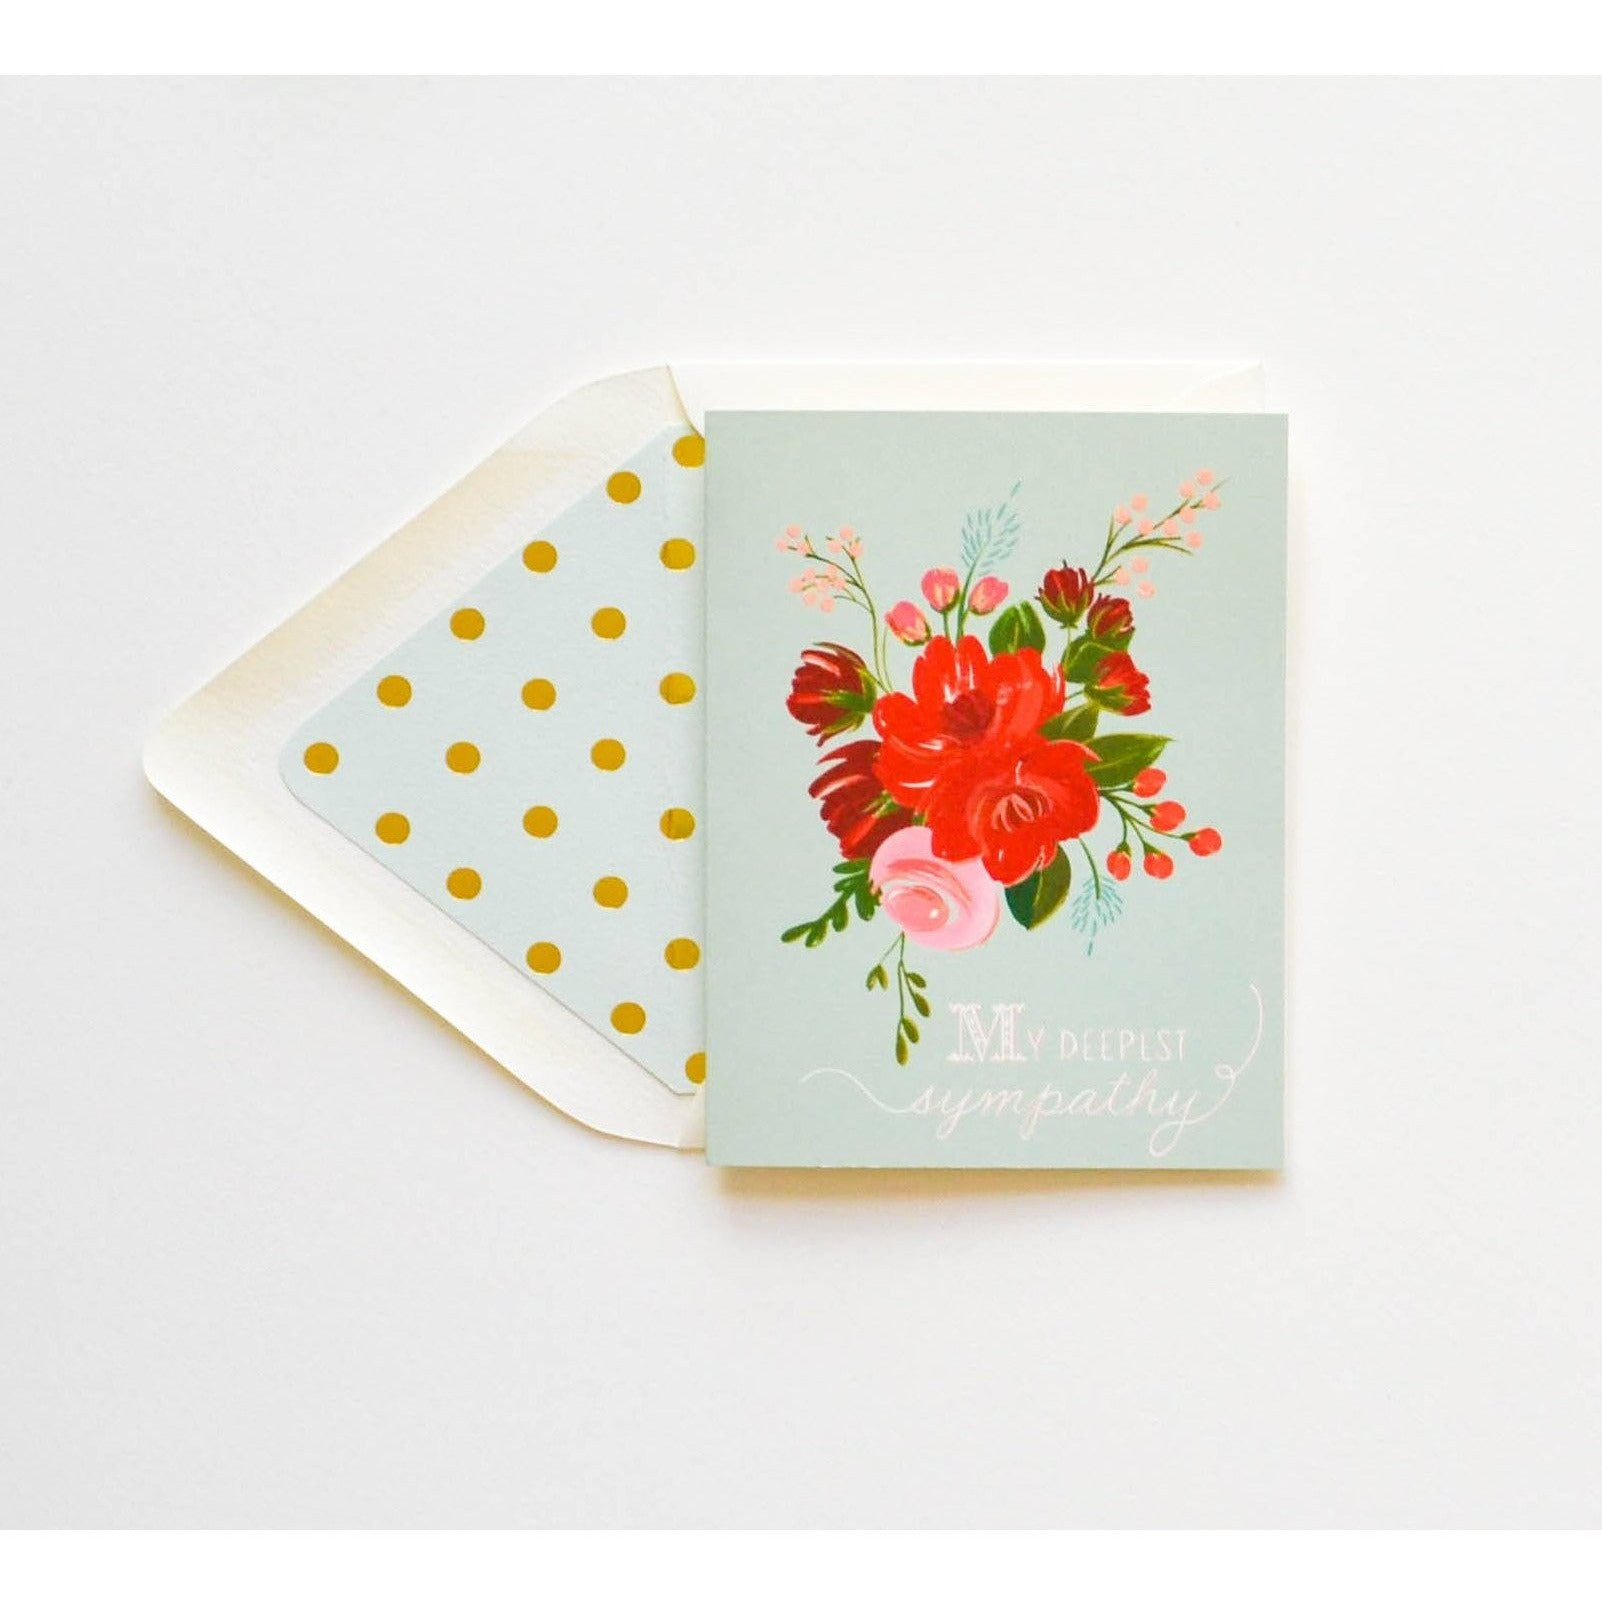 With Sympathy Floral card - The First Snow